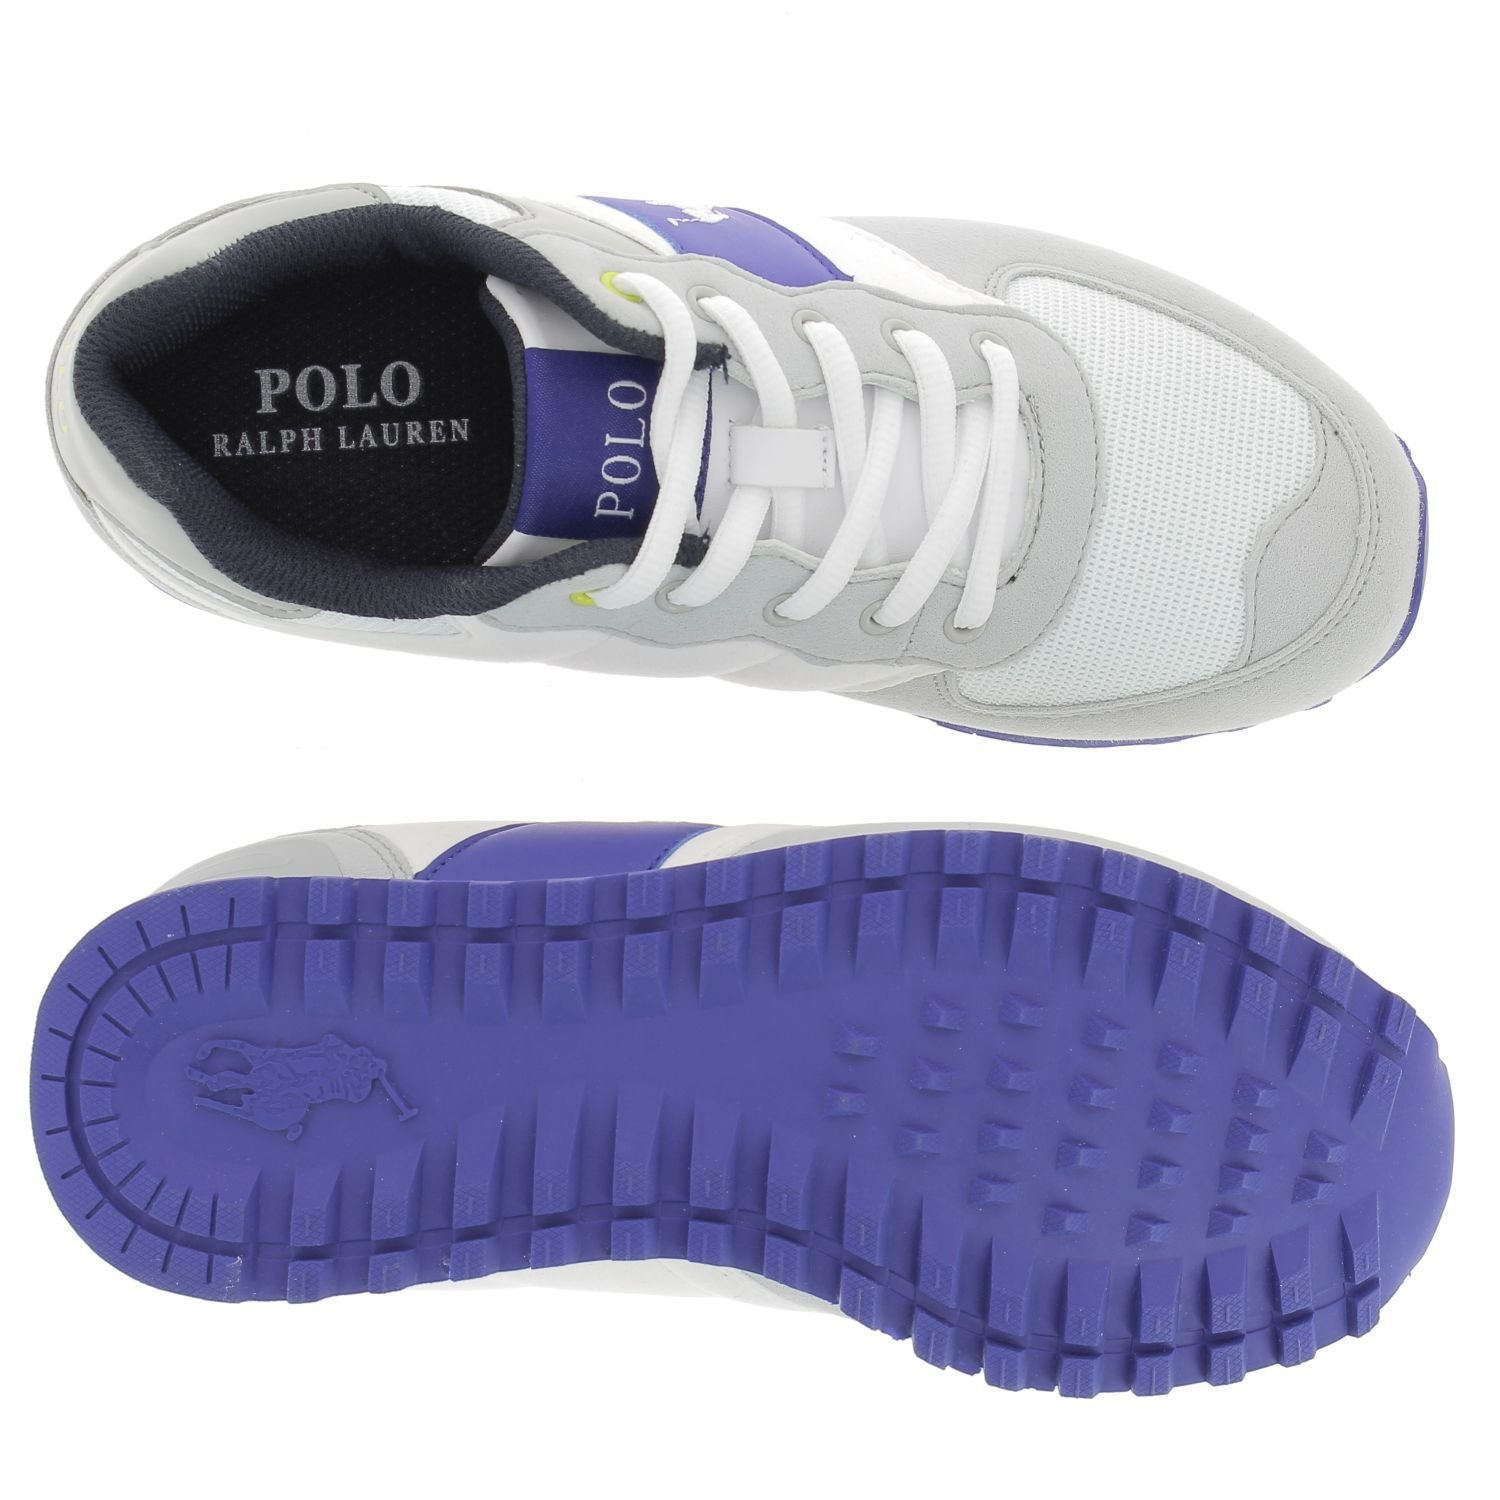 Polo Ralph LaurenSlaton - Zapatillas Unisex Niños, Color Blanco ...